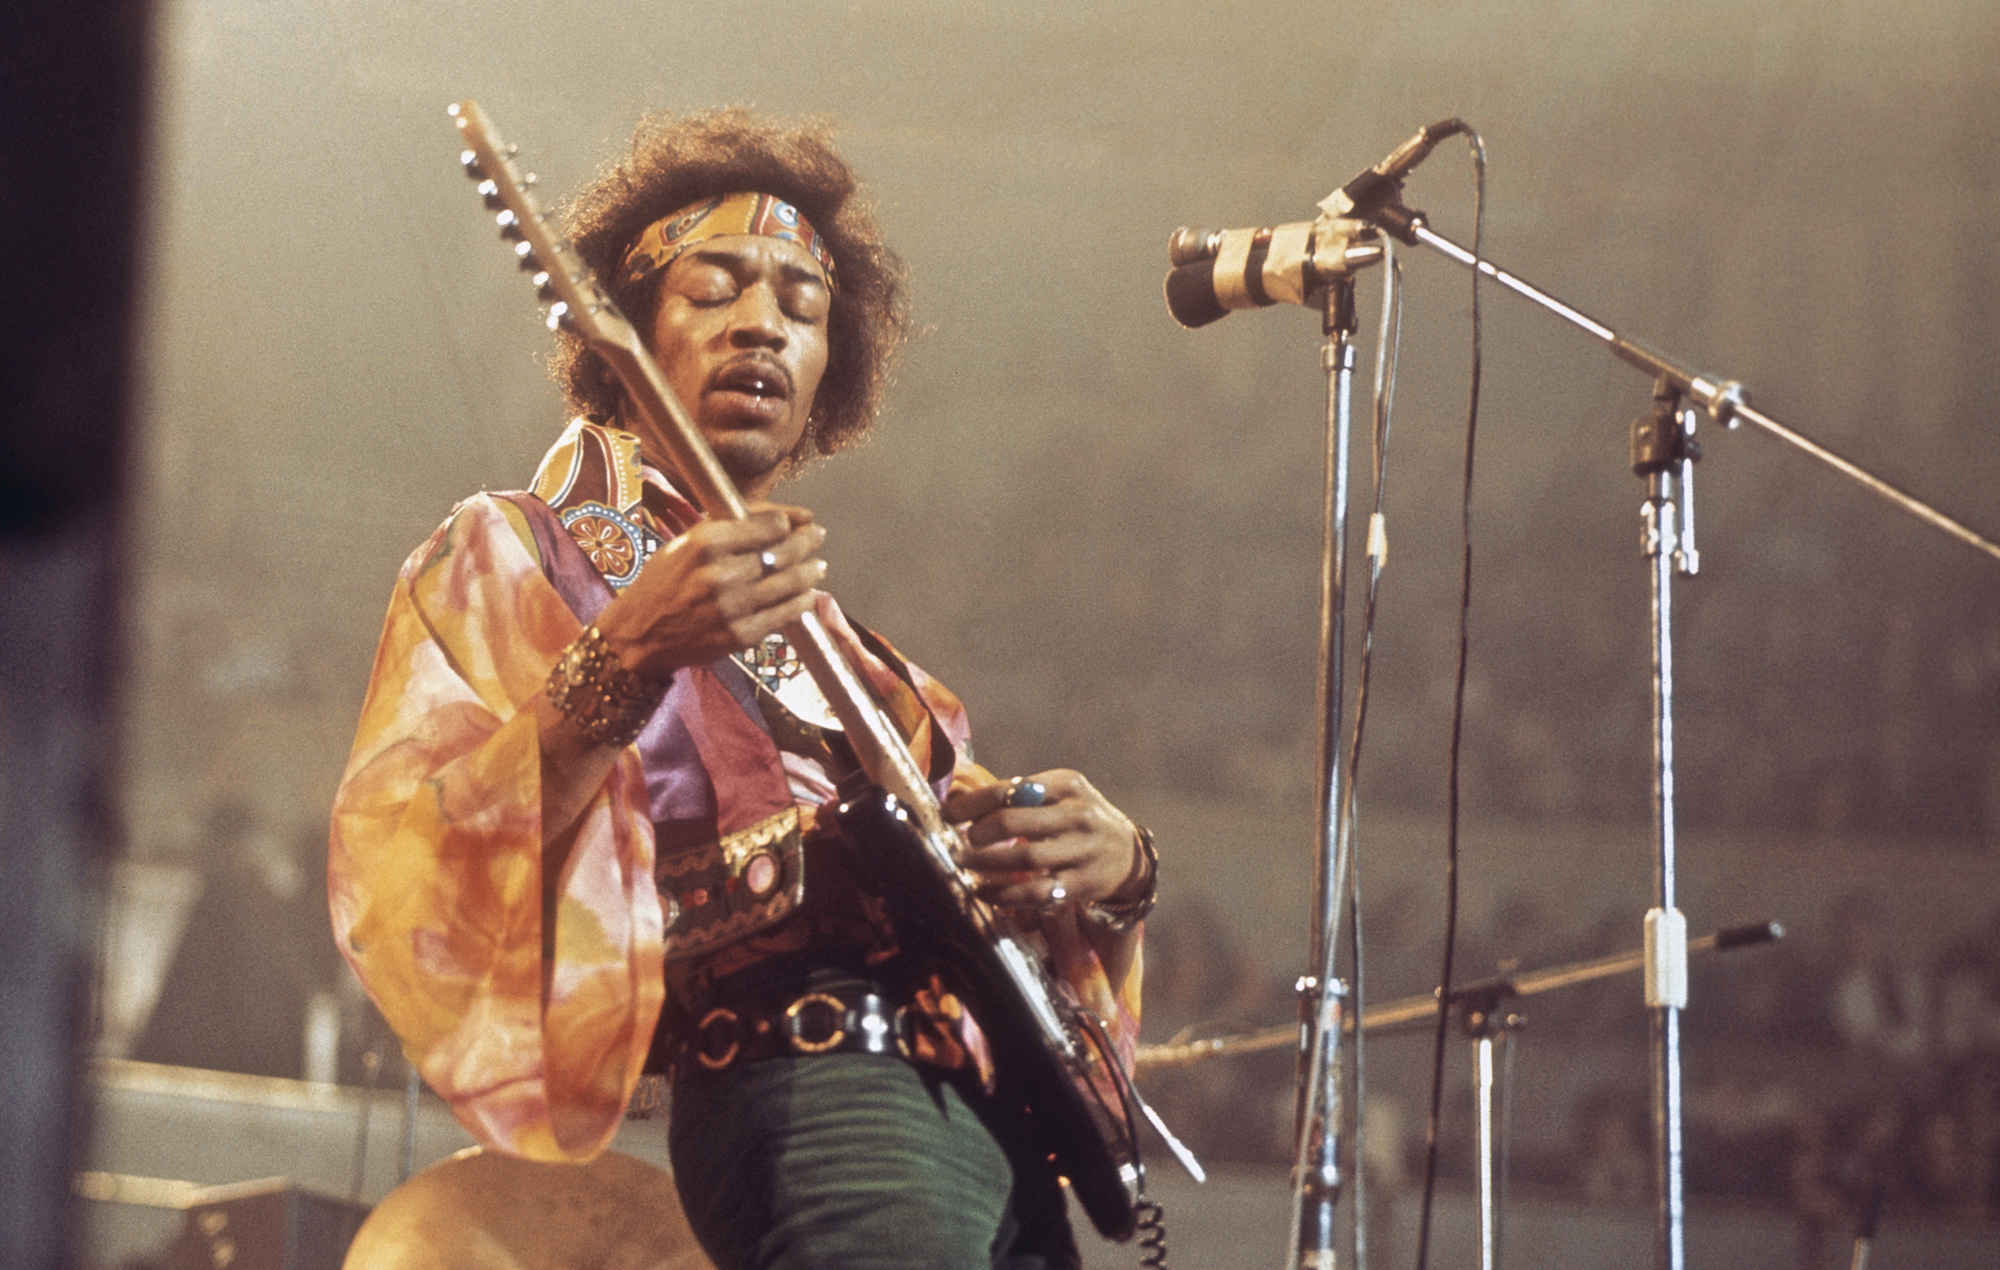 Watch Jimi Hendrix perform 'Foxey Lady' in 'Live In Maui' preview | NME